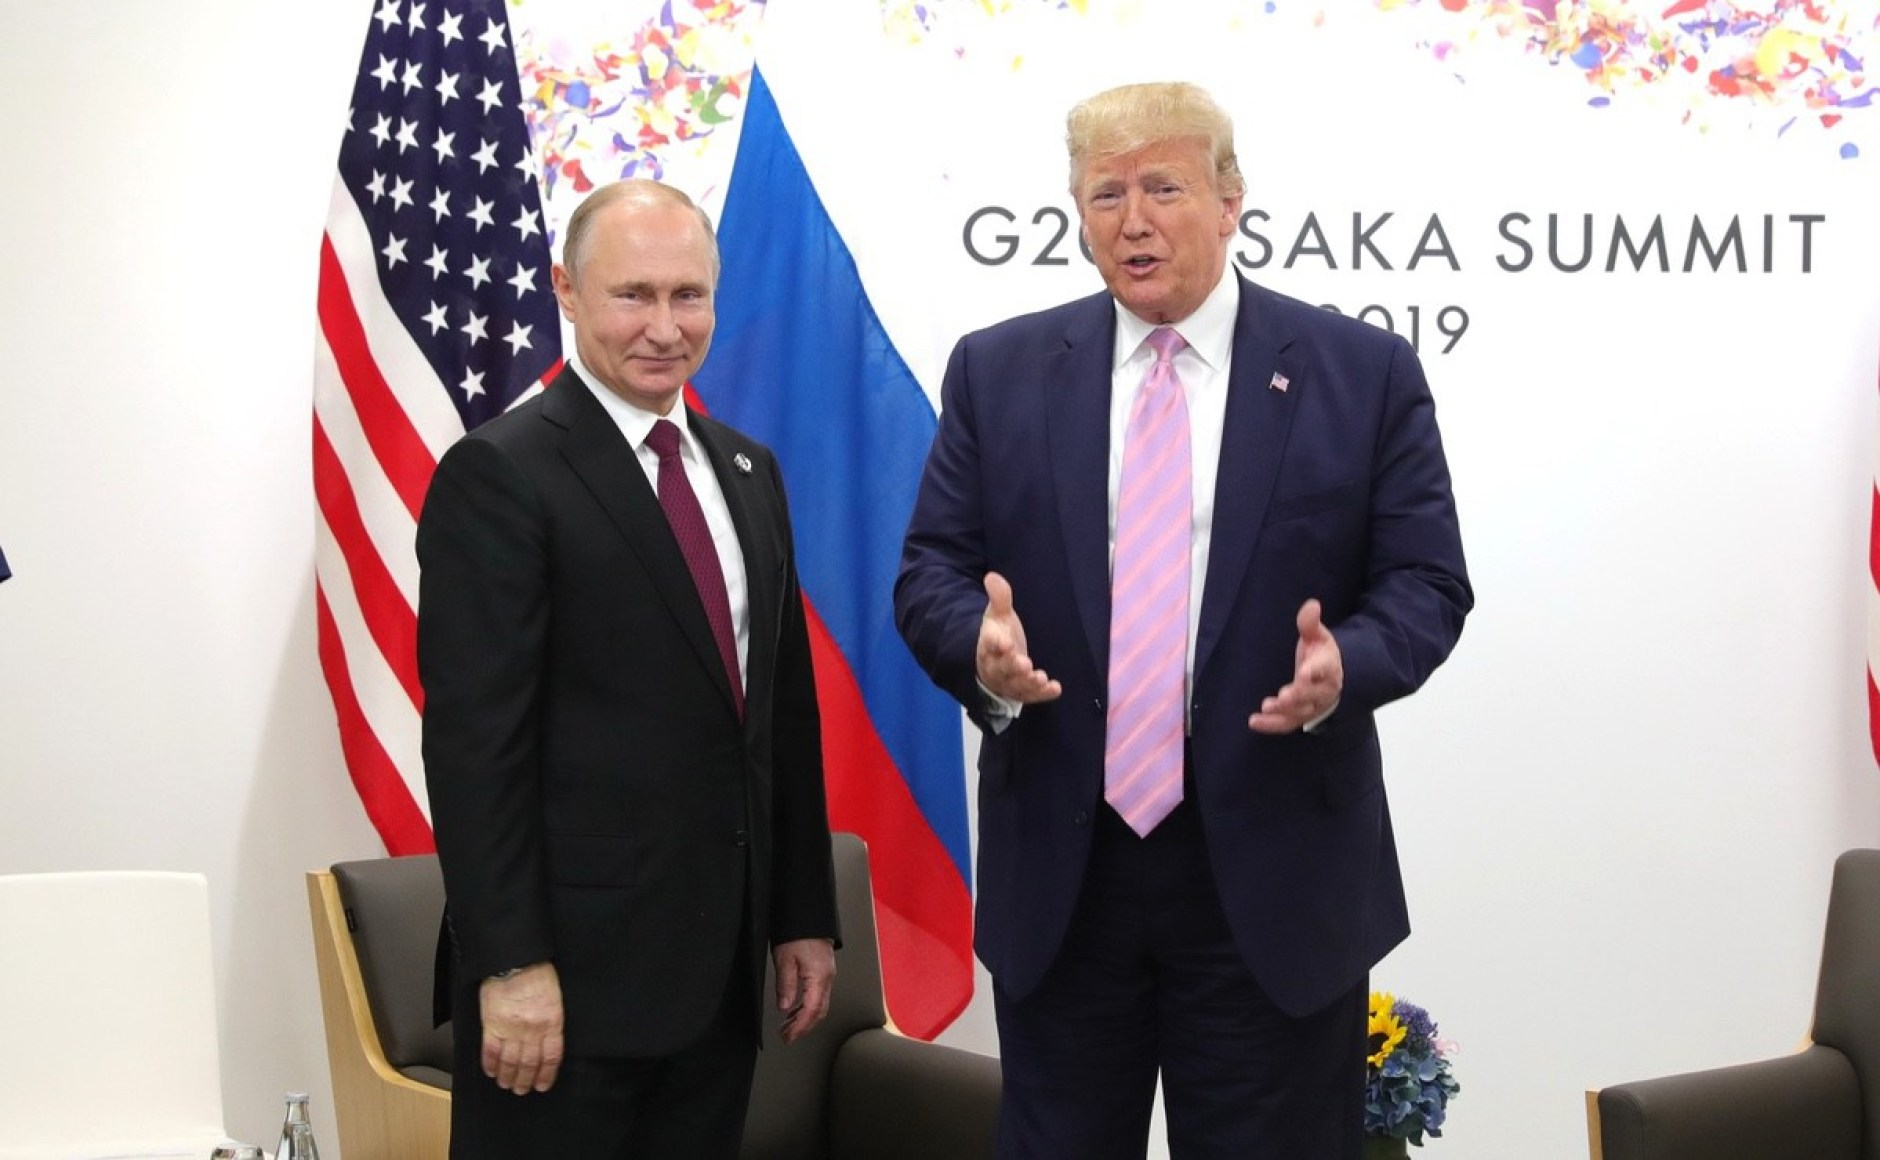 Russian President Vladimir Putin and US President Donald Trump meeting at the G20 summit - 28 June 2019 (Source: The Kremlin)